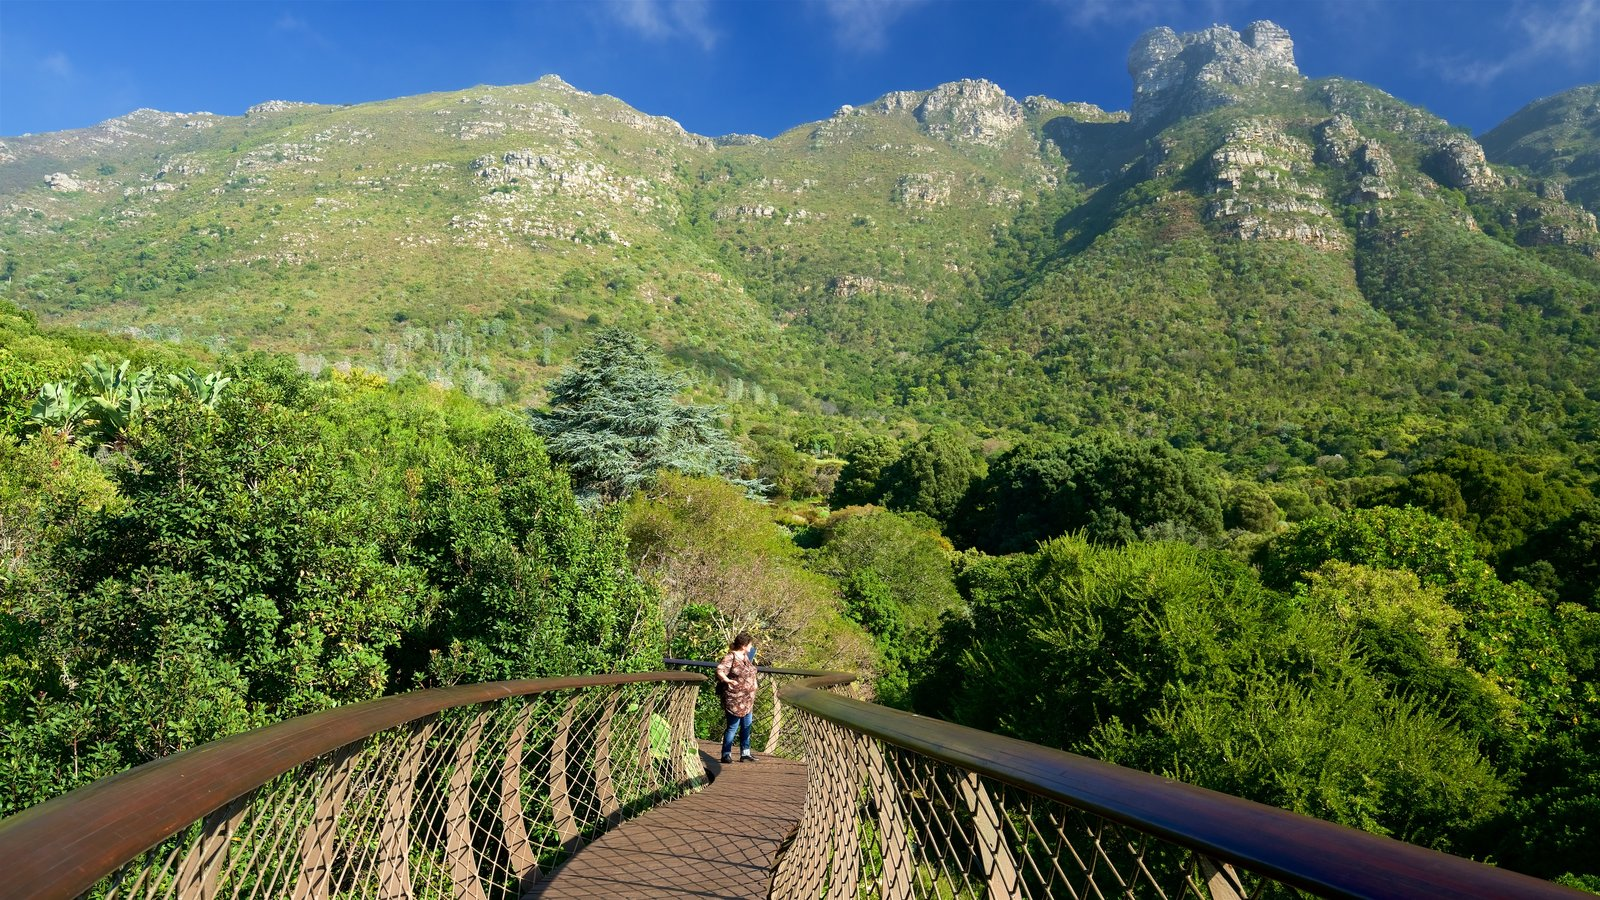 Kirstenbosch National Botanical Garden showing a park and a bridge as well as an individual femail